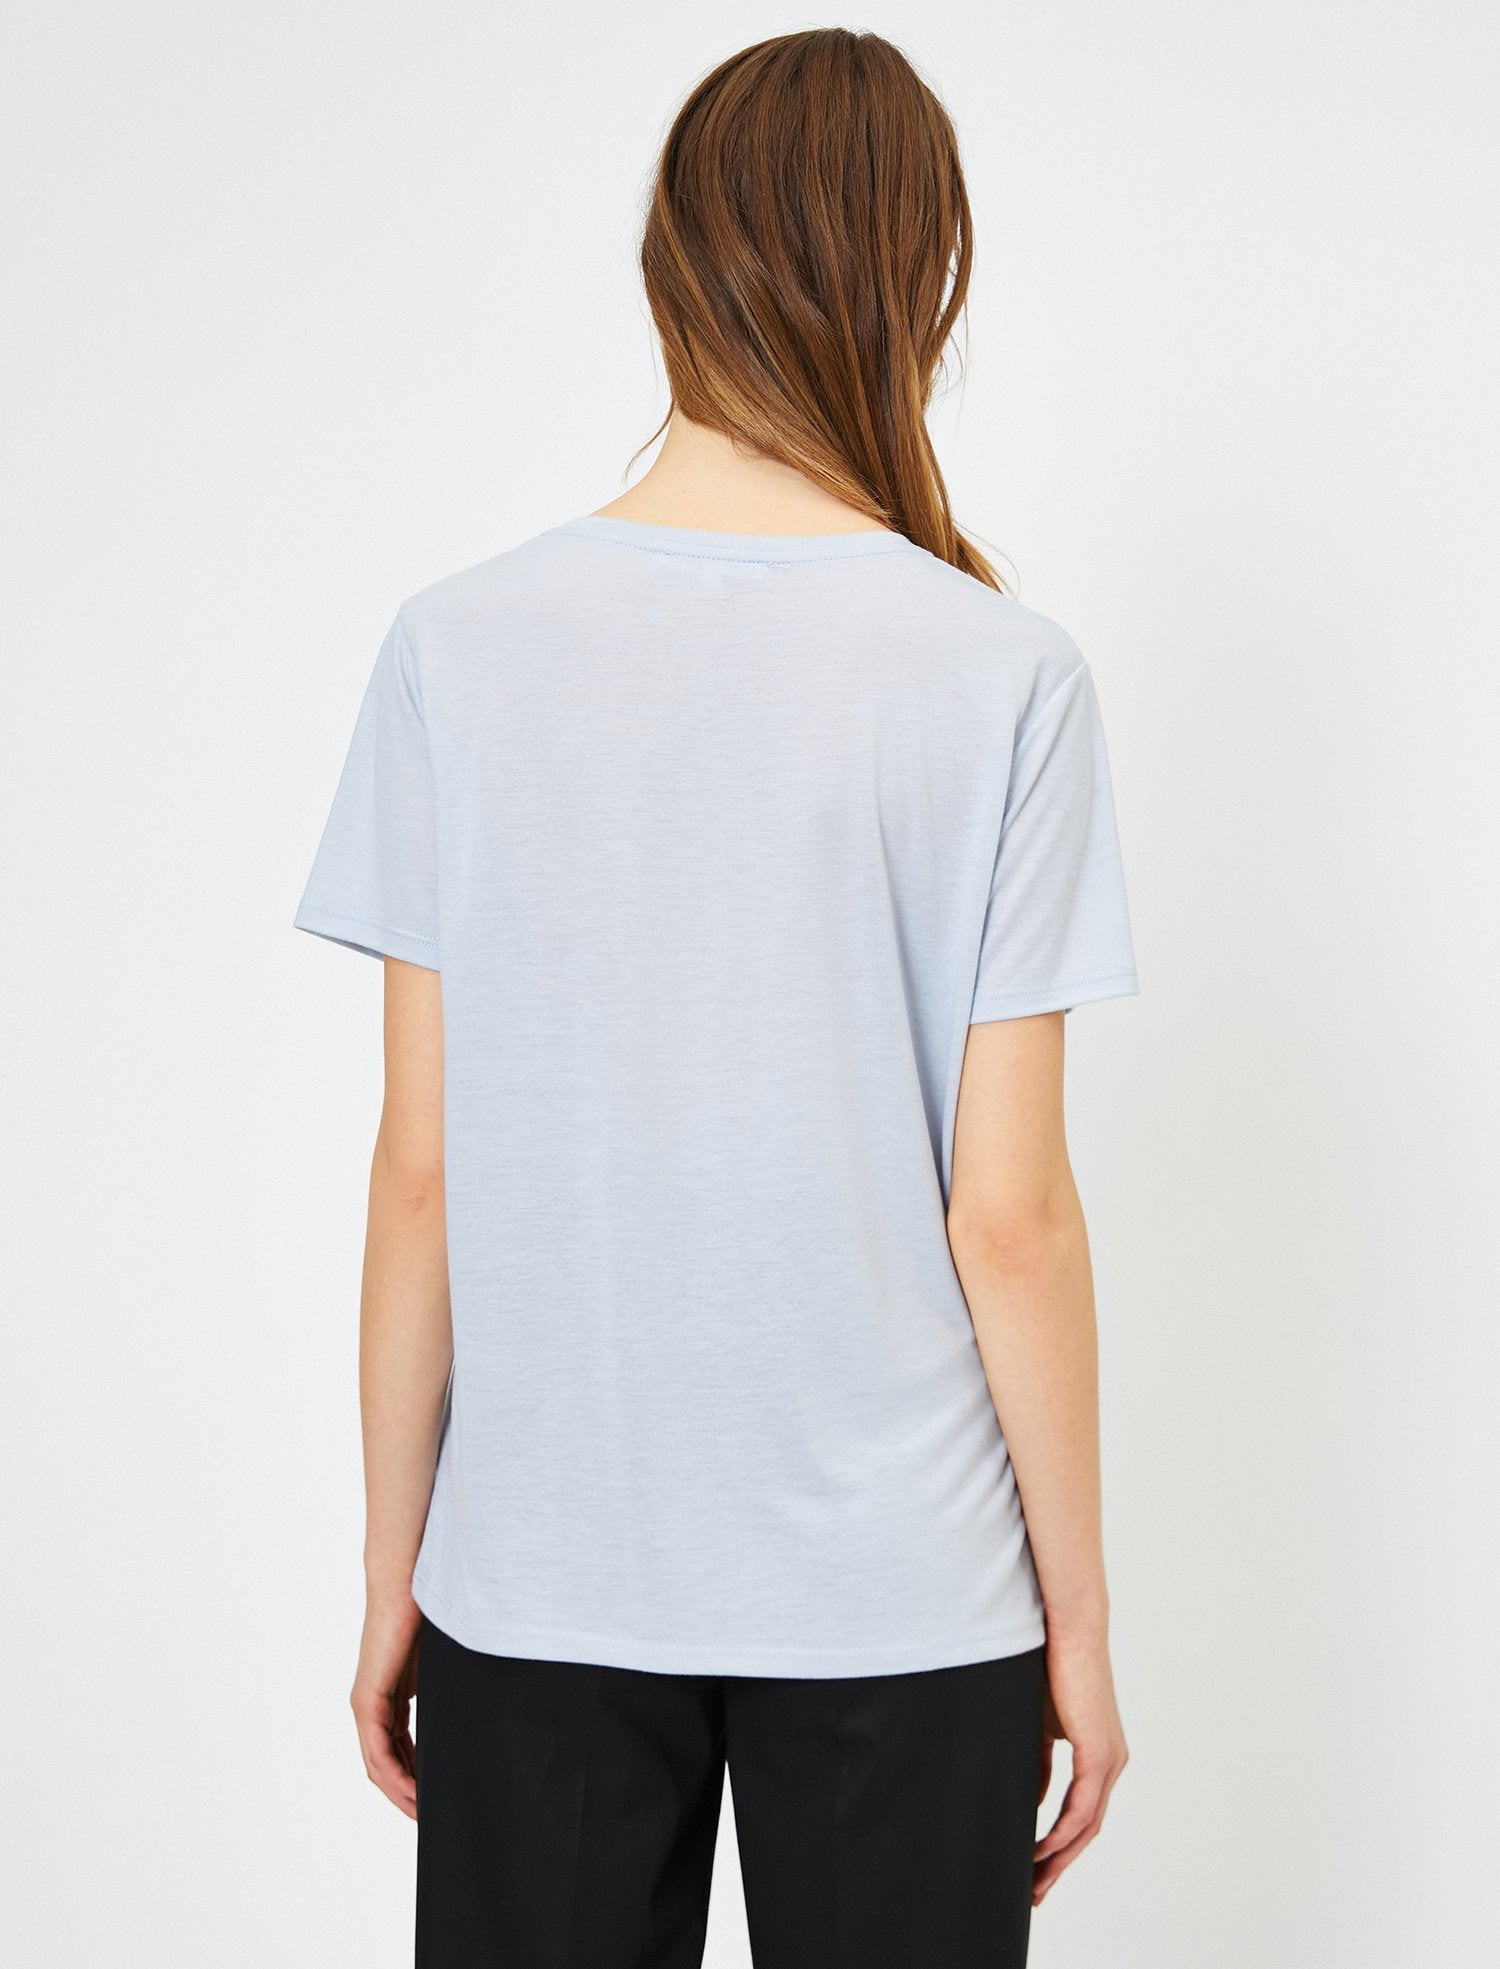 Graphic Long Tshirt in Light Blue